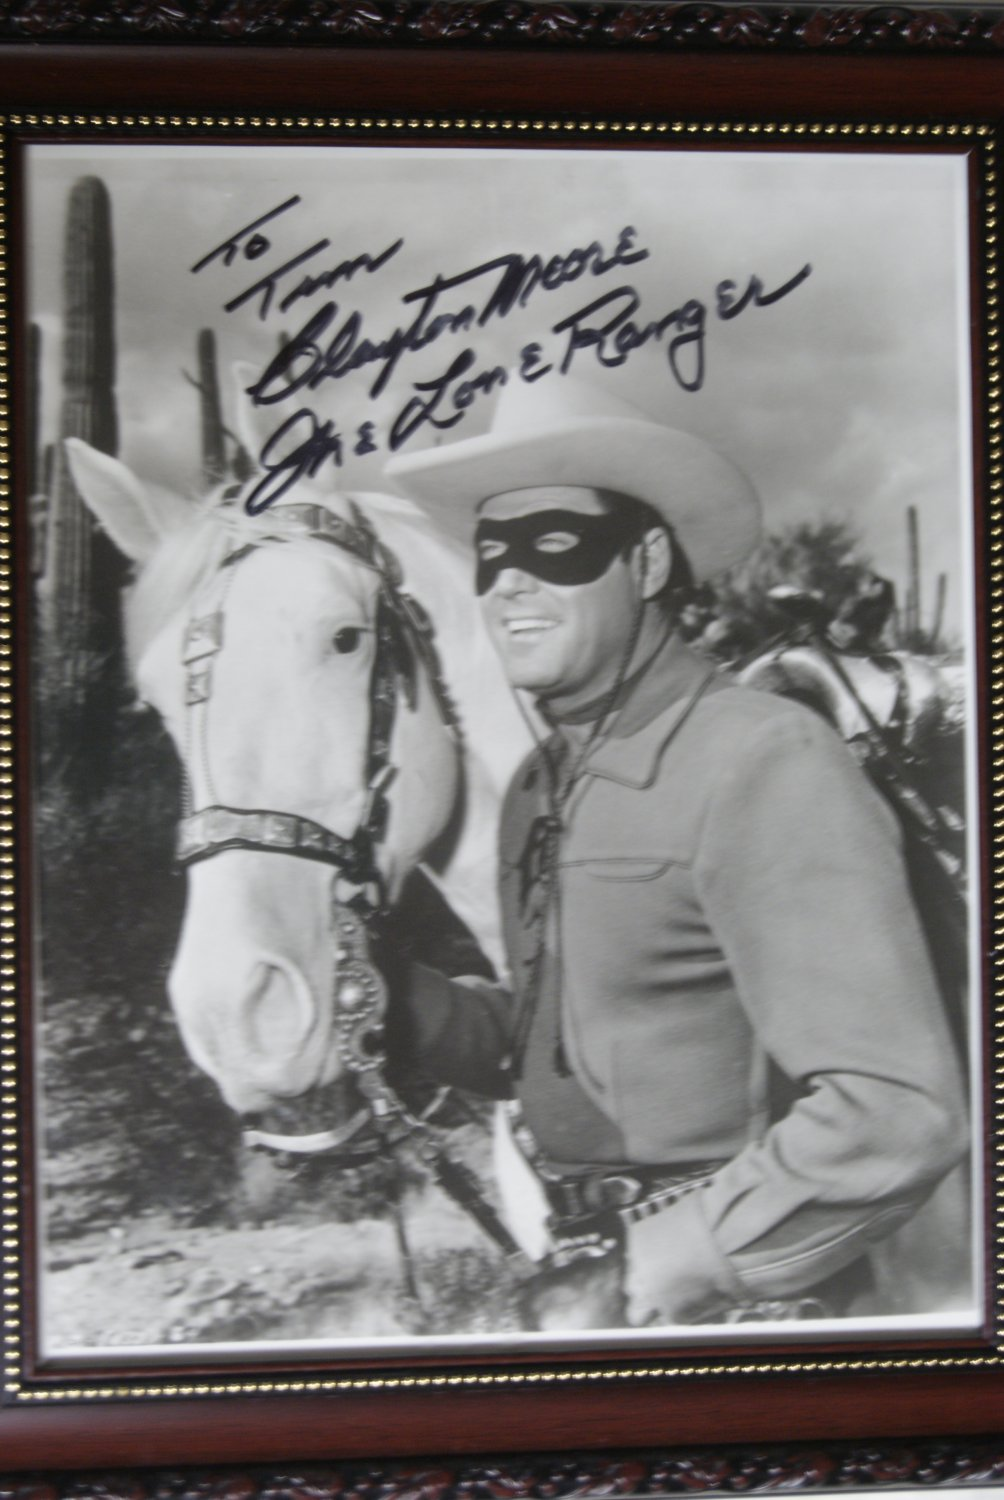 Clayton Moore / The Lone Ranger autograph